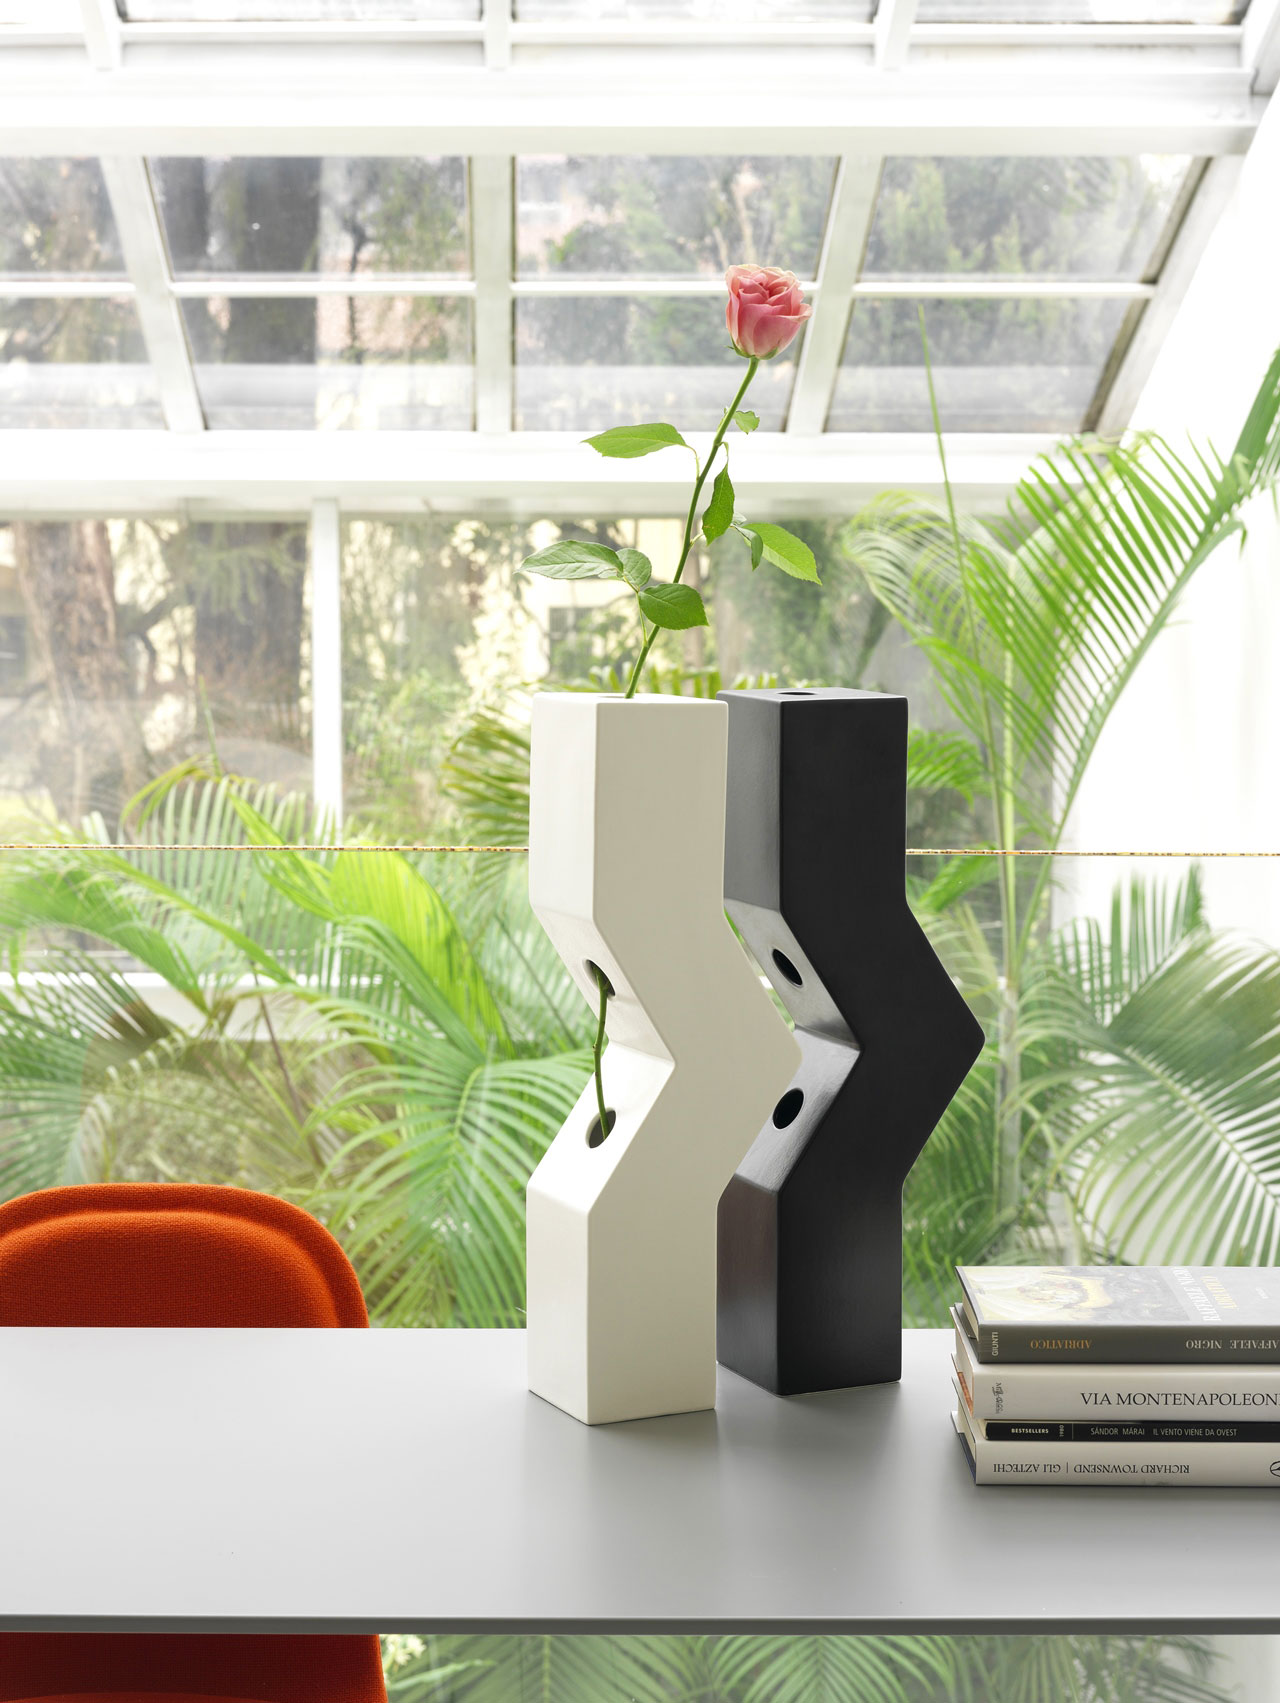 duo vase by cappellini